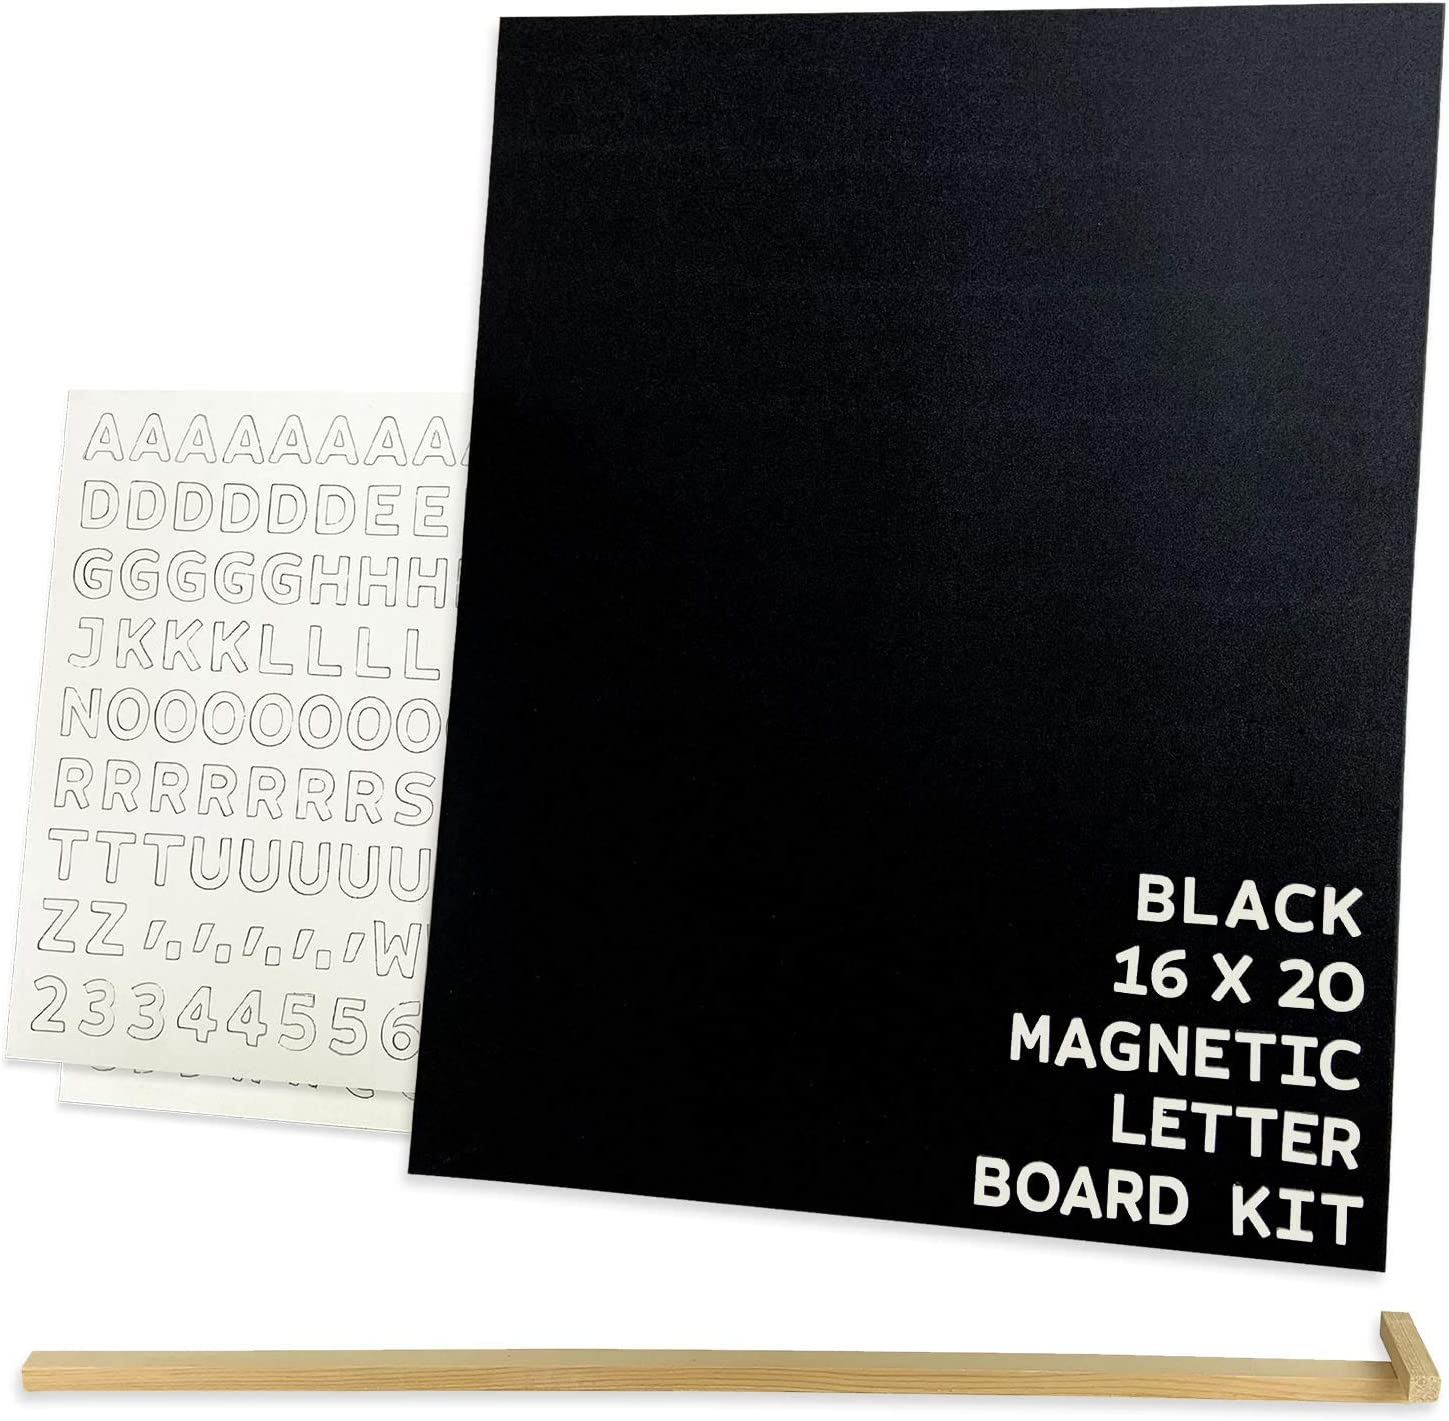 JUT MADE Letter Boards - Magnetic Messages Made to Stick Out - Changeable Letter Board - Rich Wood Finish - Distinctive Room Decor - Desk Accessories - Home School - (16x20 inch, Black)